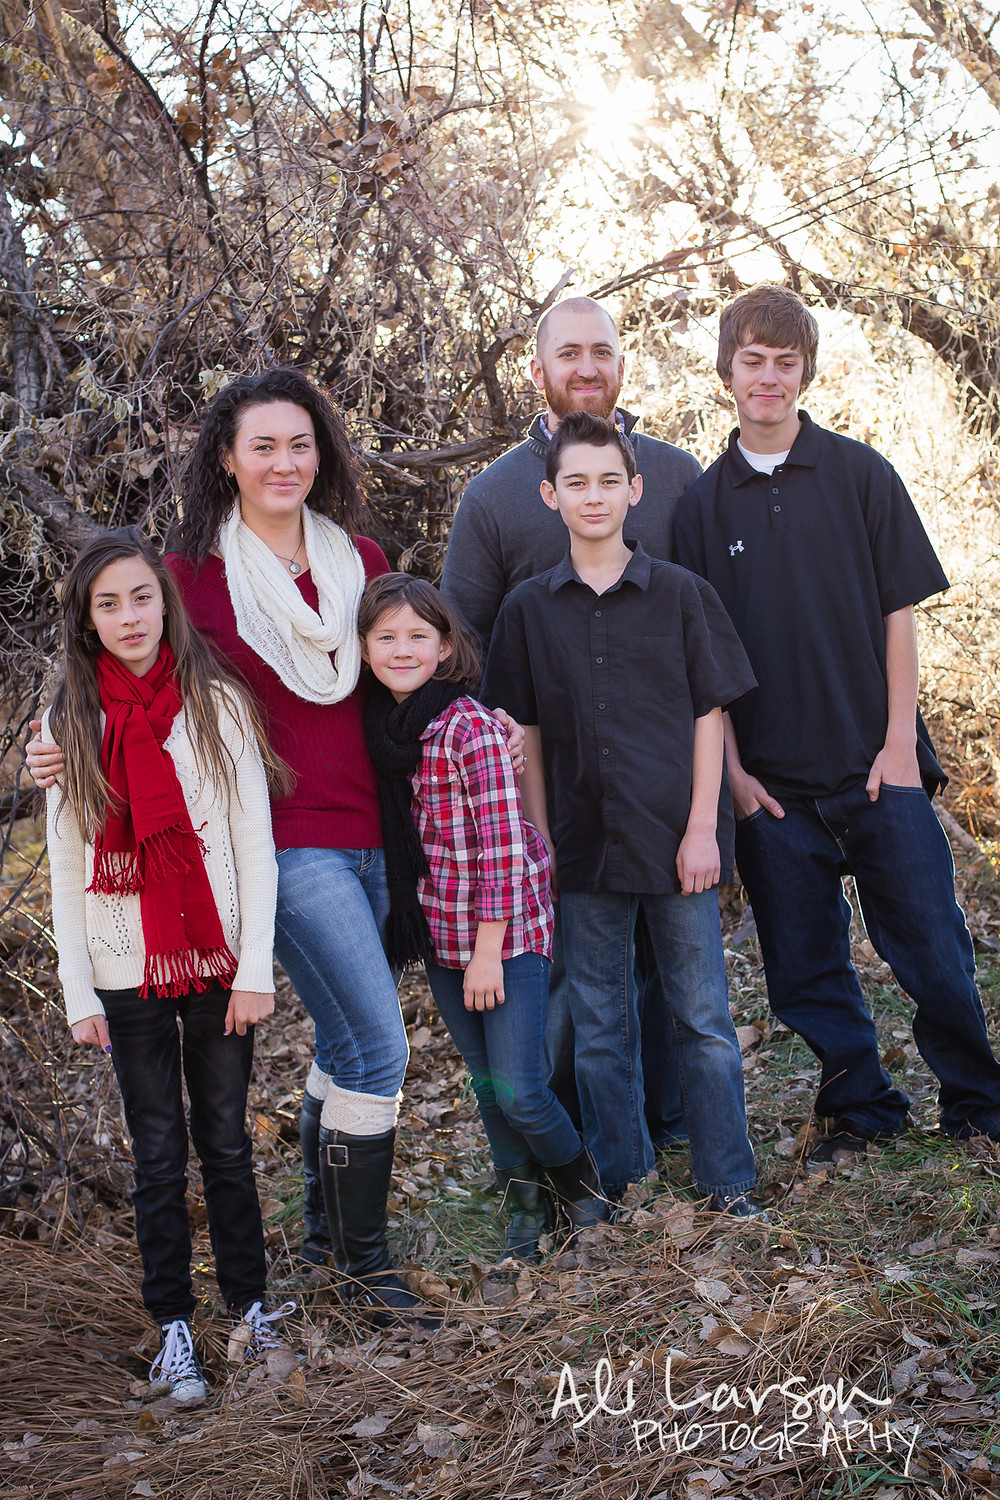 Aaker Family Nov 2014 resized-3.jpg